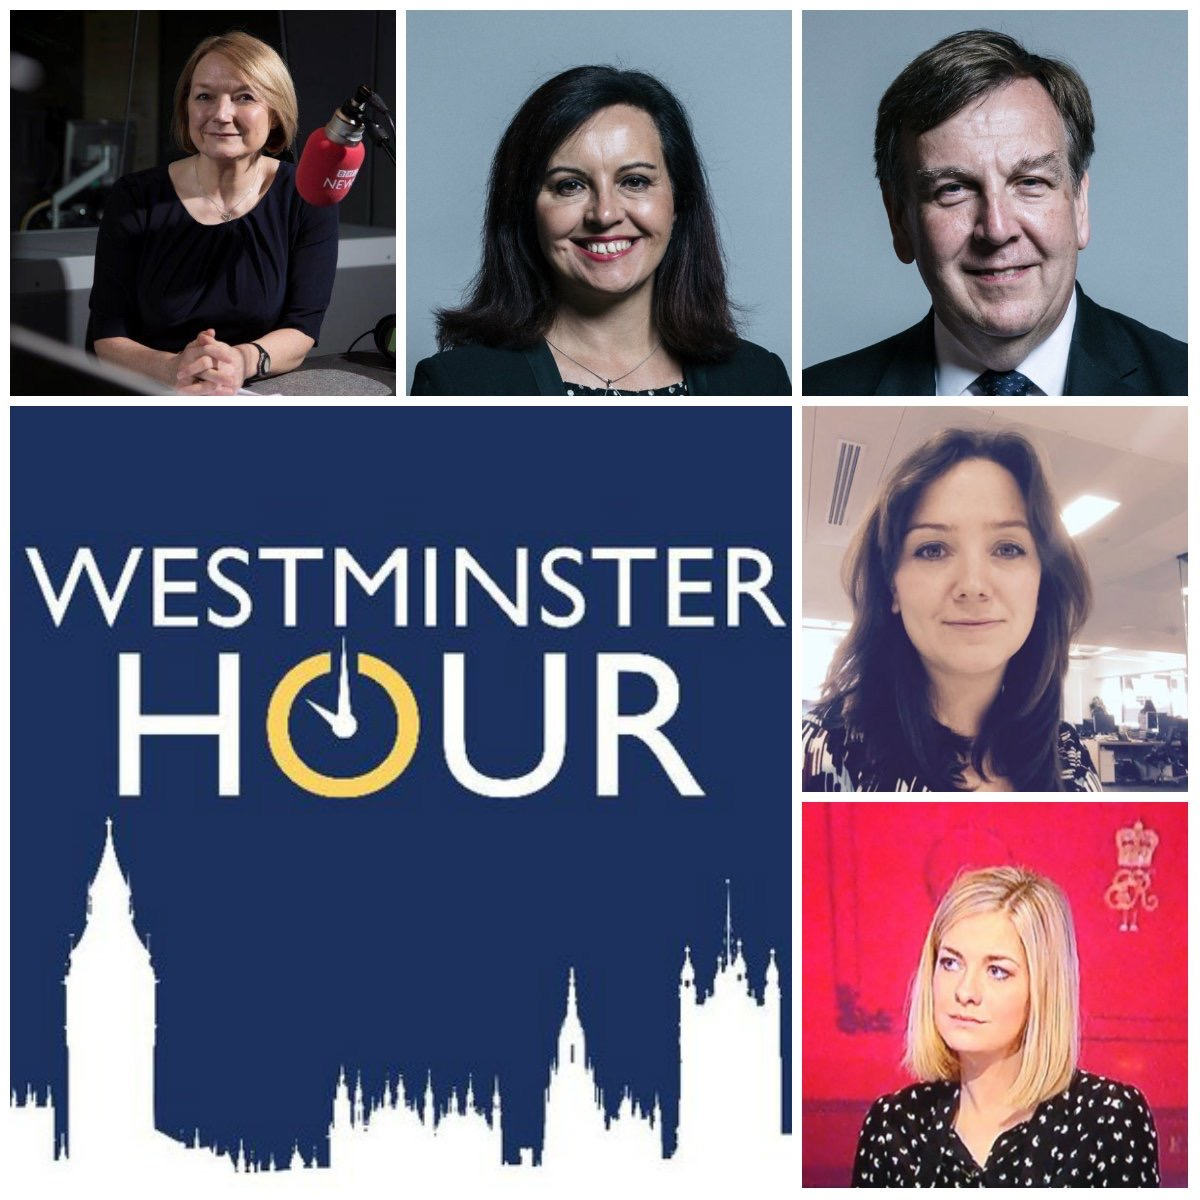 Westminster_Hour_Graphic_.JPG